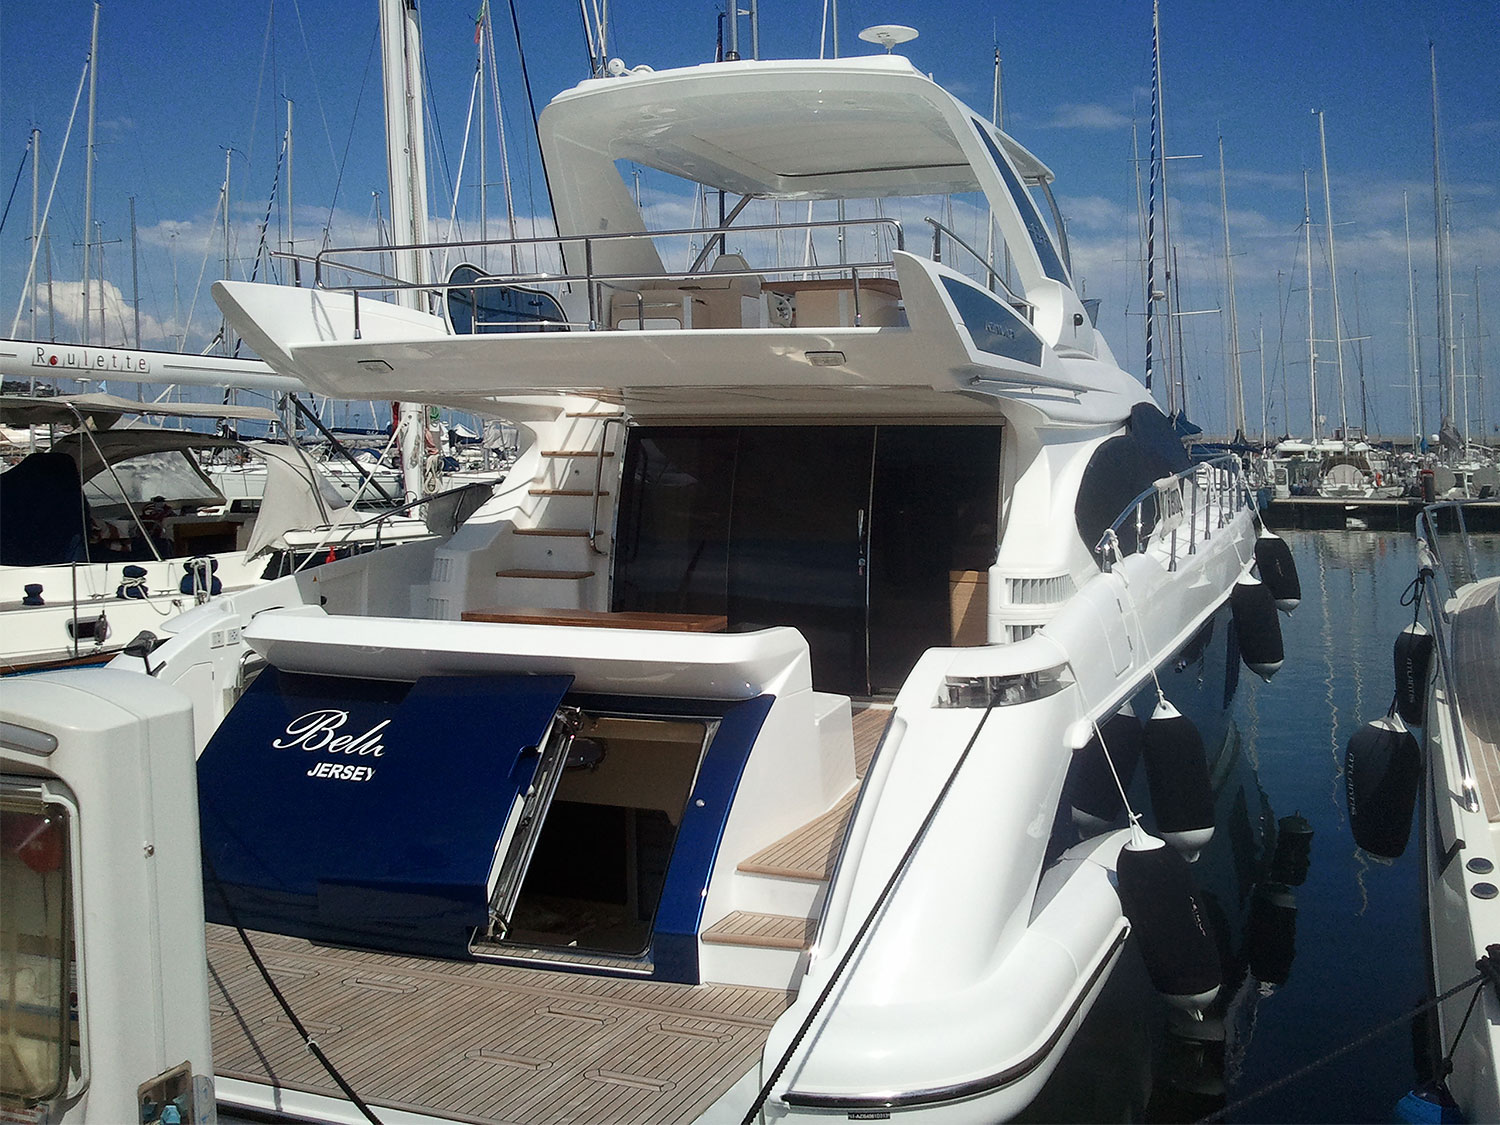 Yacht for sale Azimut 64: price by request > Motor yachts > Azimut ...